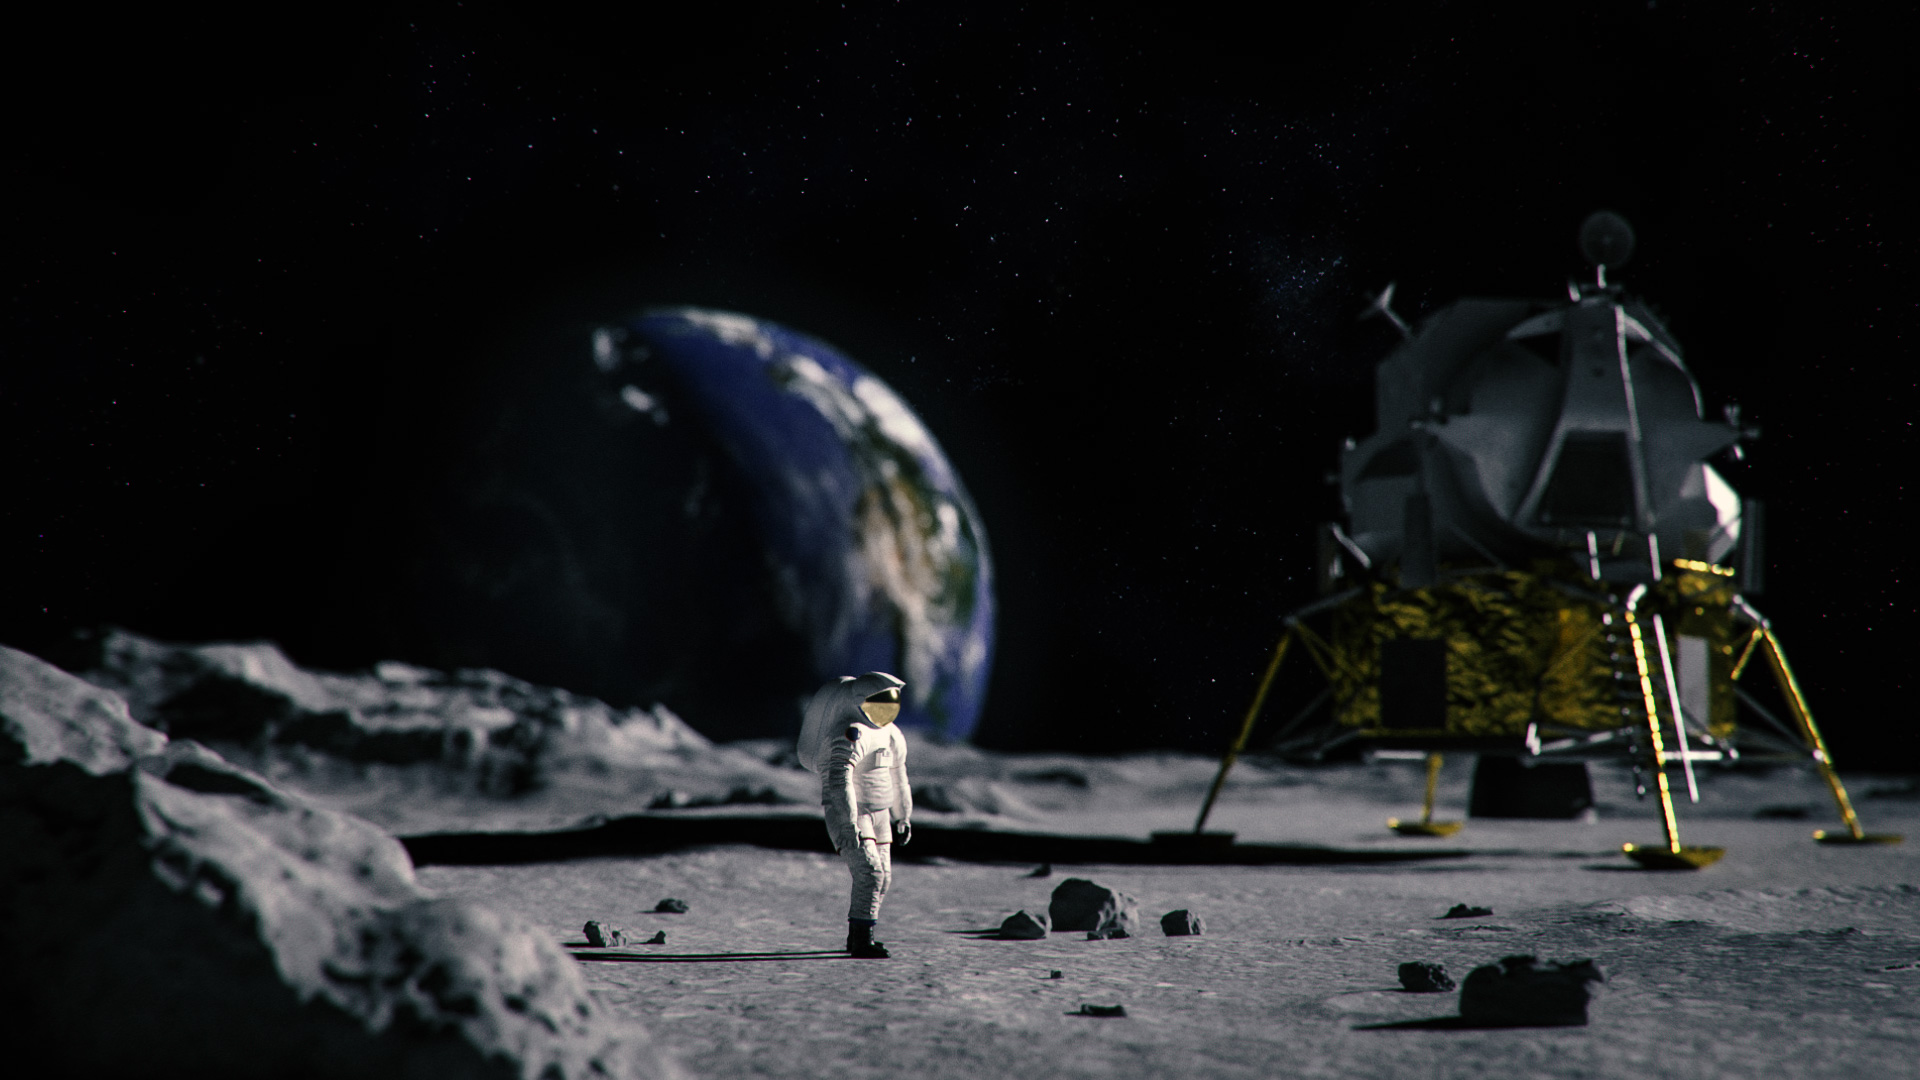 A 3D scene on the moon where the only source of lighting is sunlight